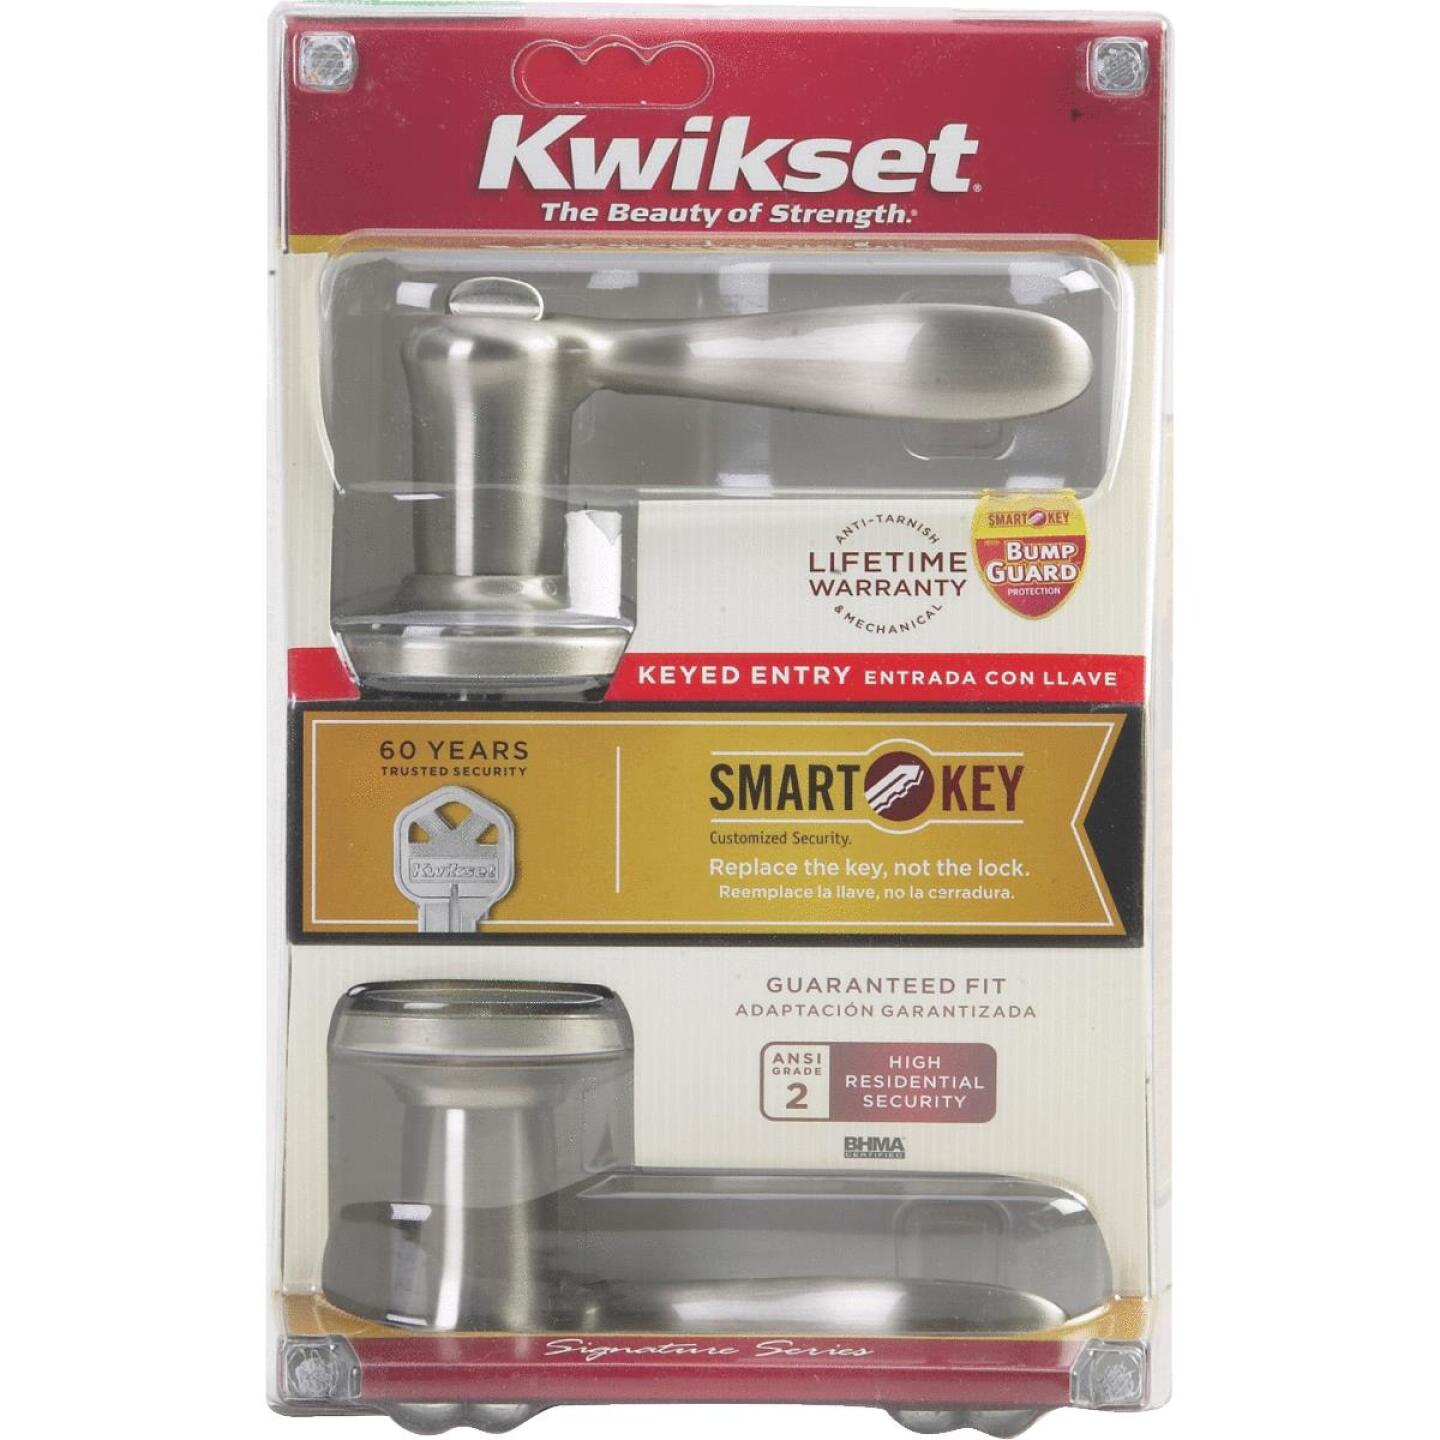 Kwikset Signature Series Satin Nickel Tustin Entry Door Lever with Smartkey Image 5